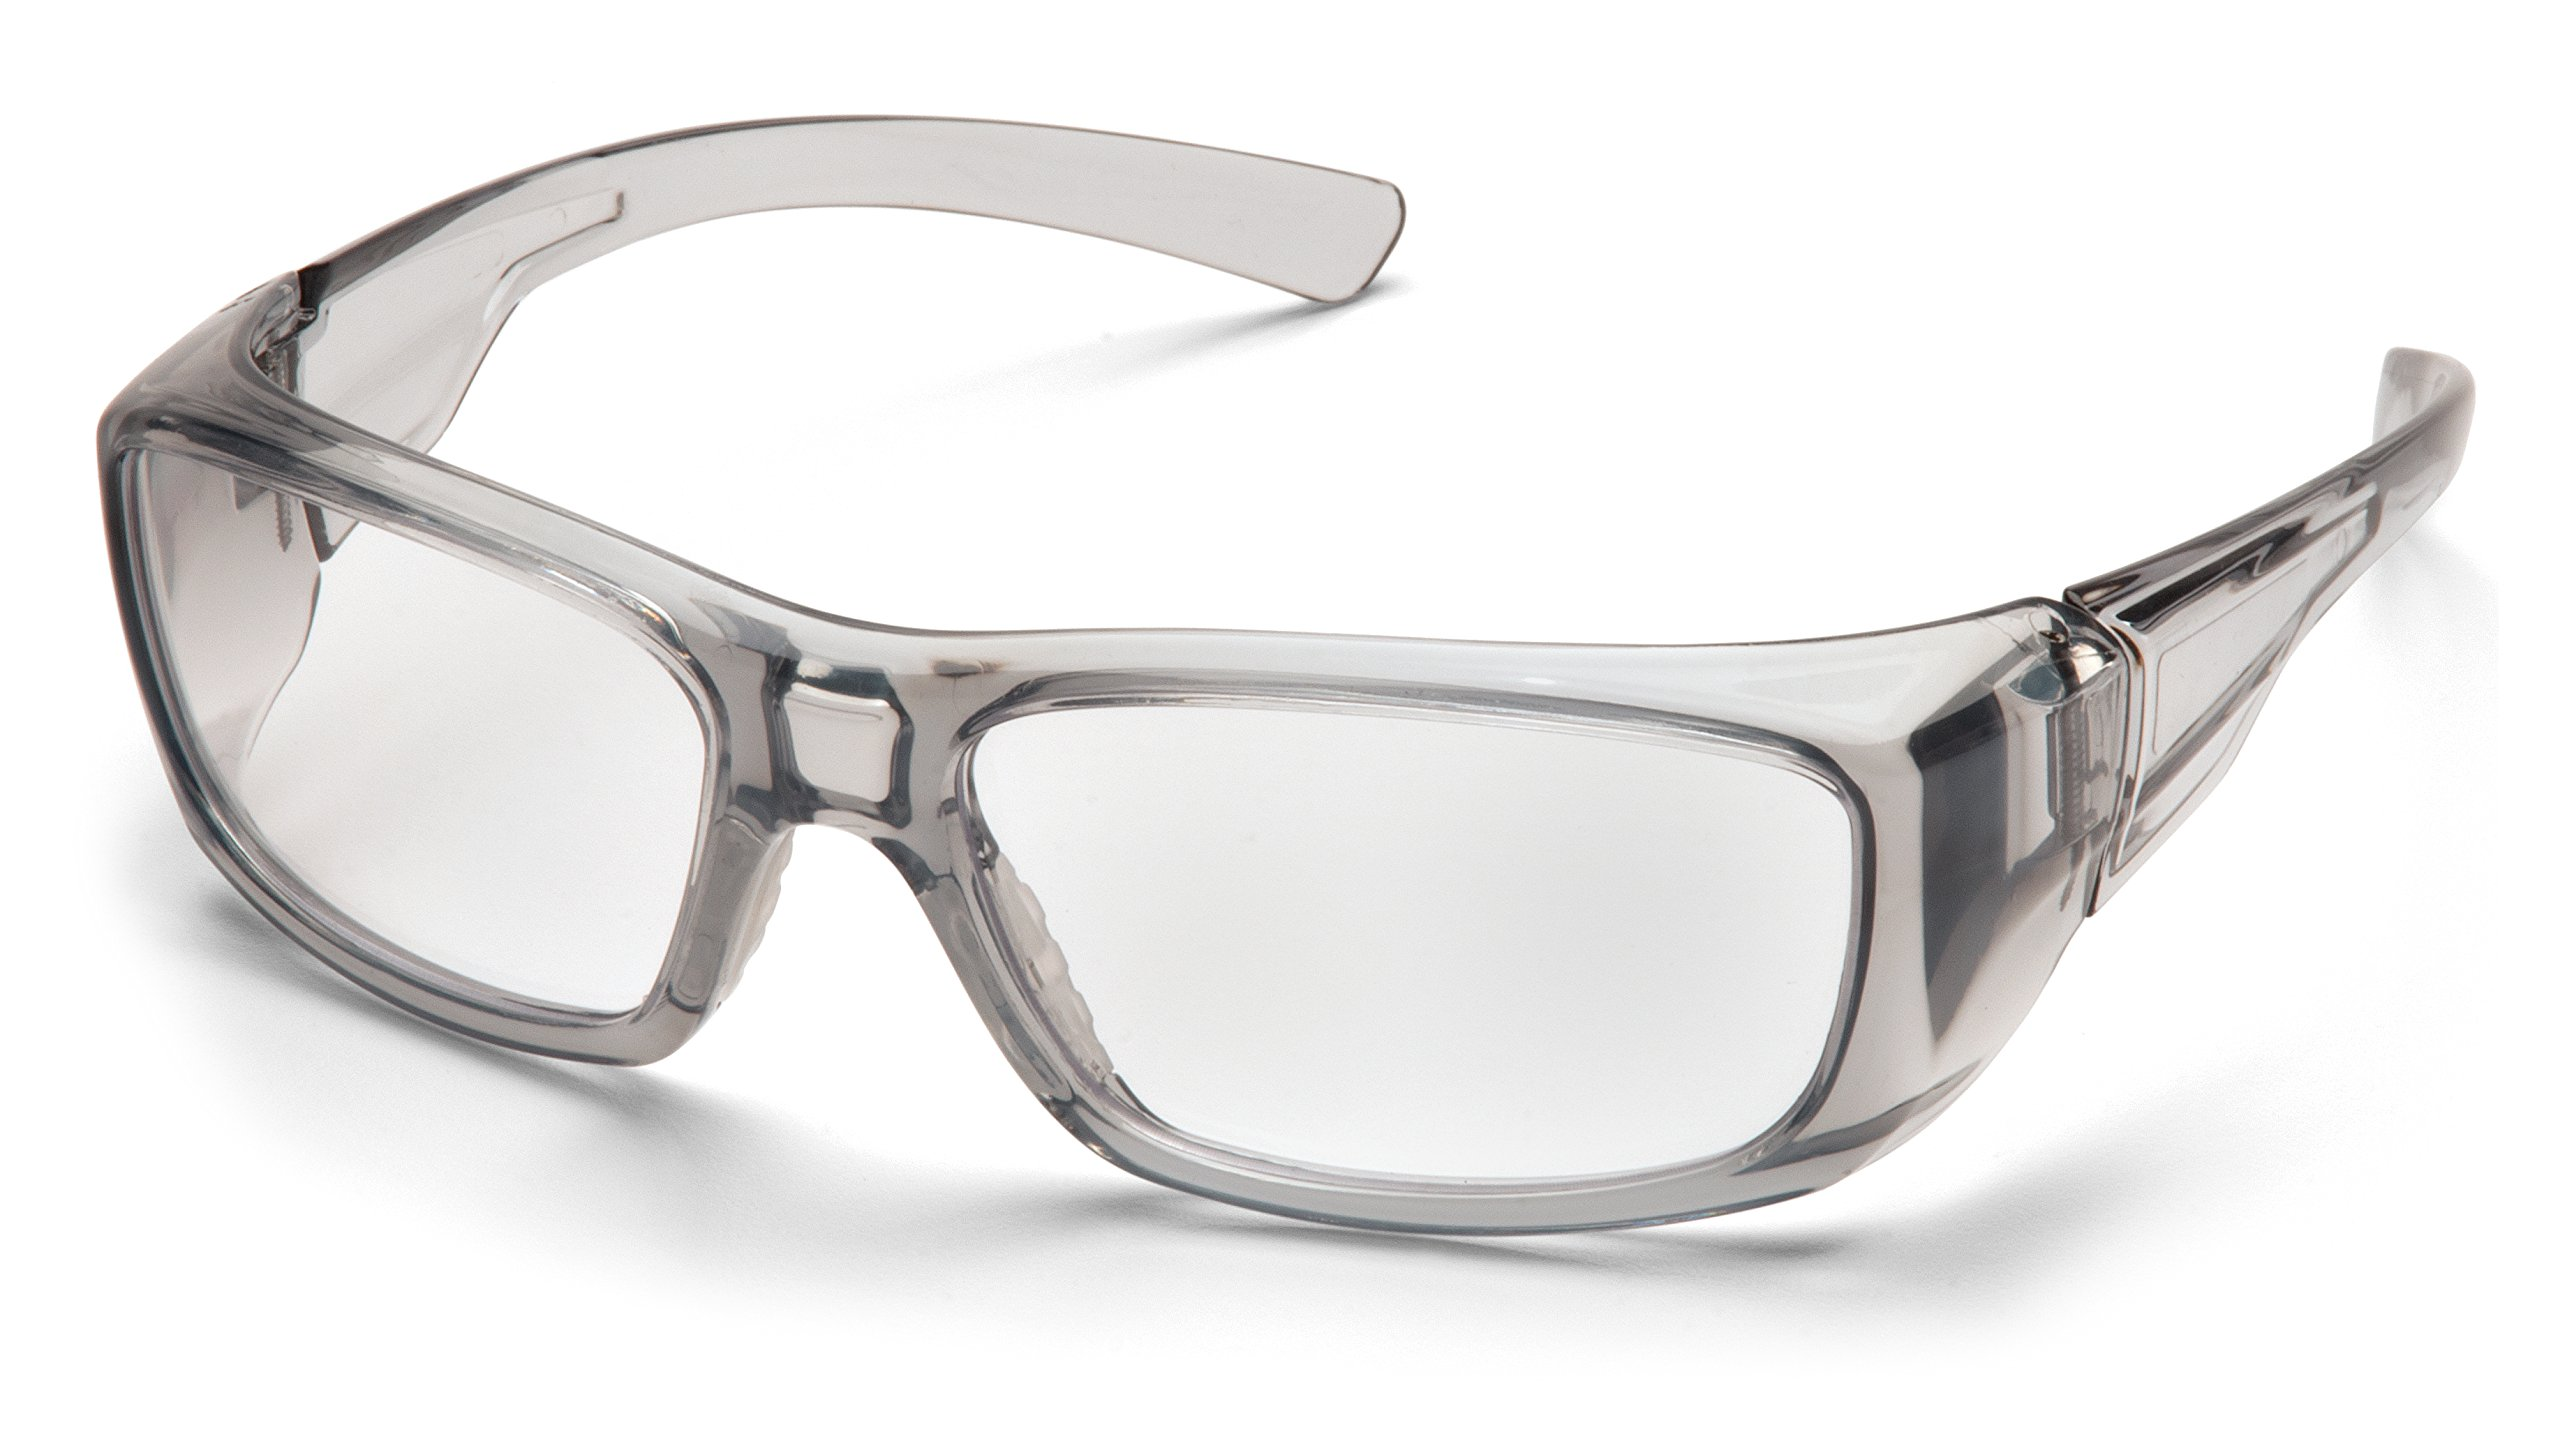 Pyramex Safety Emerge Safety Glasses with Reader Lenses Option